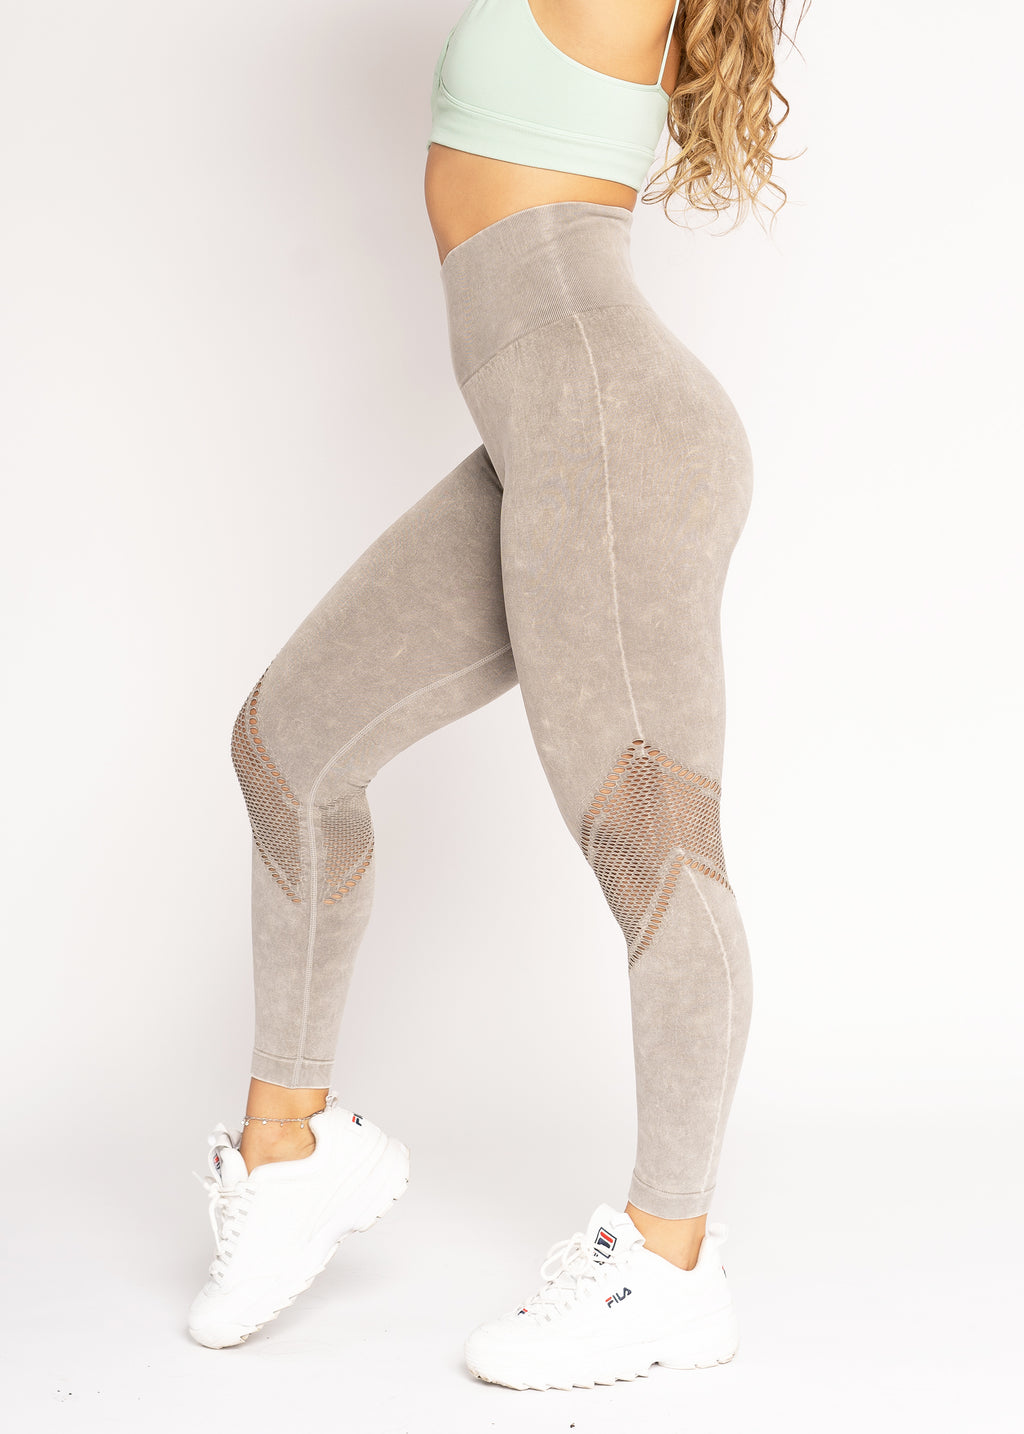 Energy Fern Dye Wash Seamless Leggings